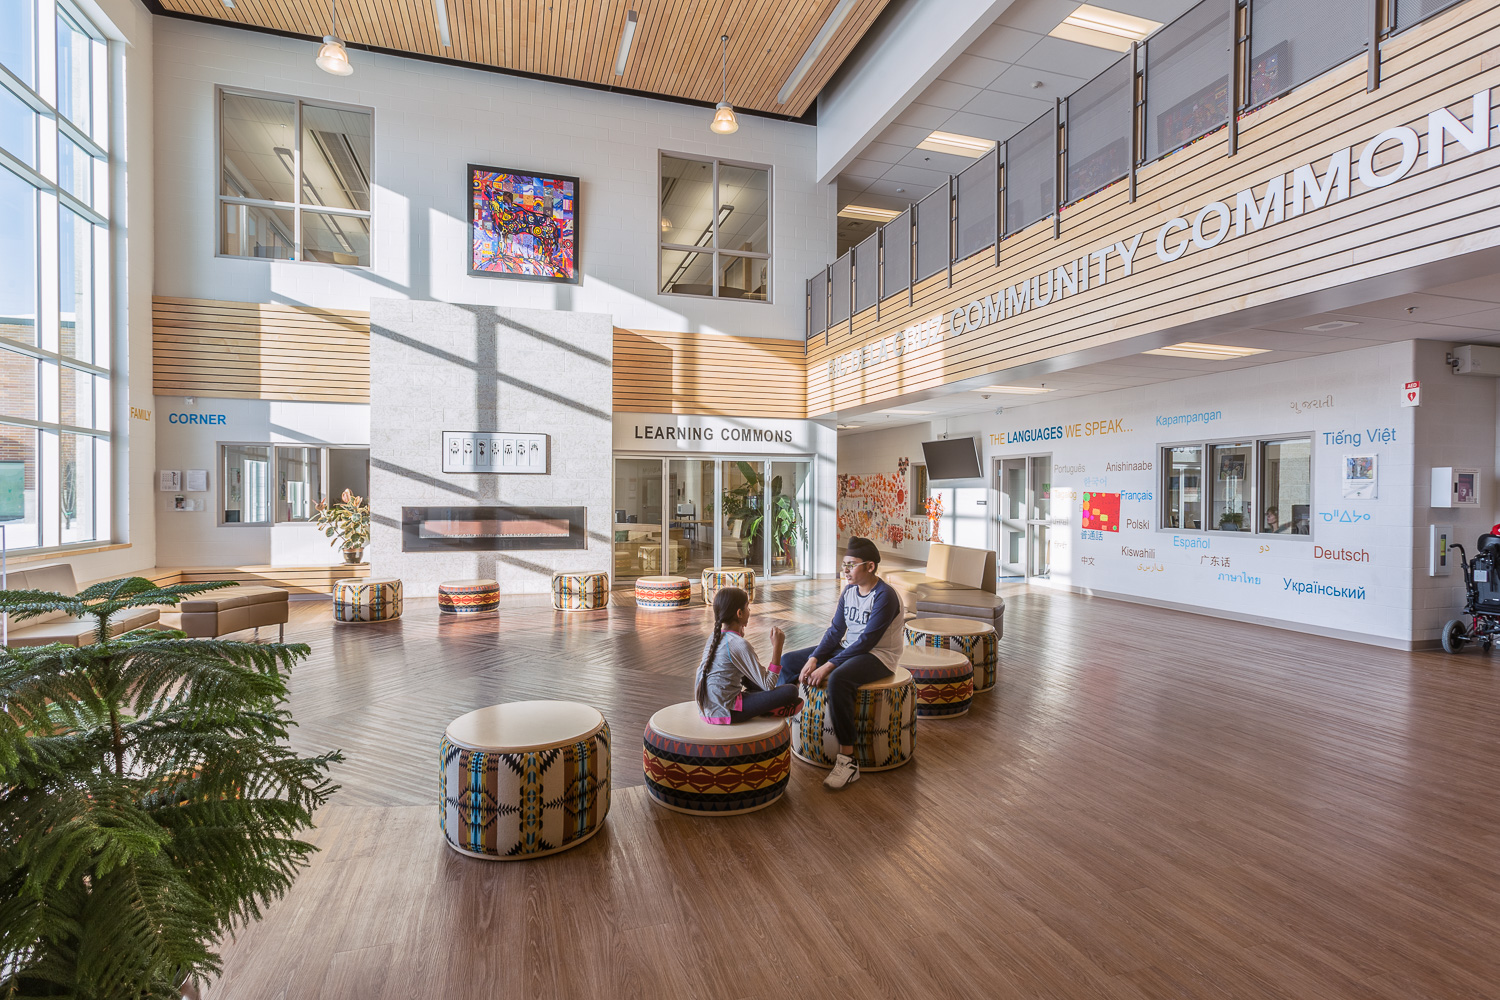 Amber Trails Community School, interior photo of main lobby with children sitting / Photo:  Lindsay Reid